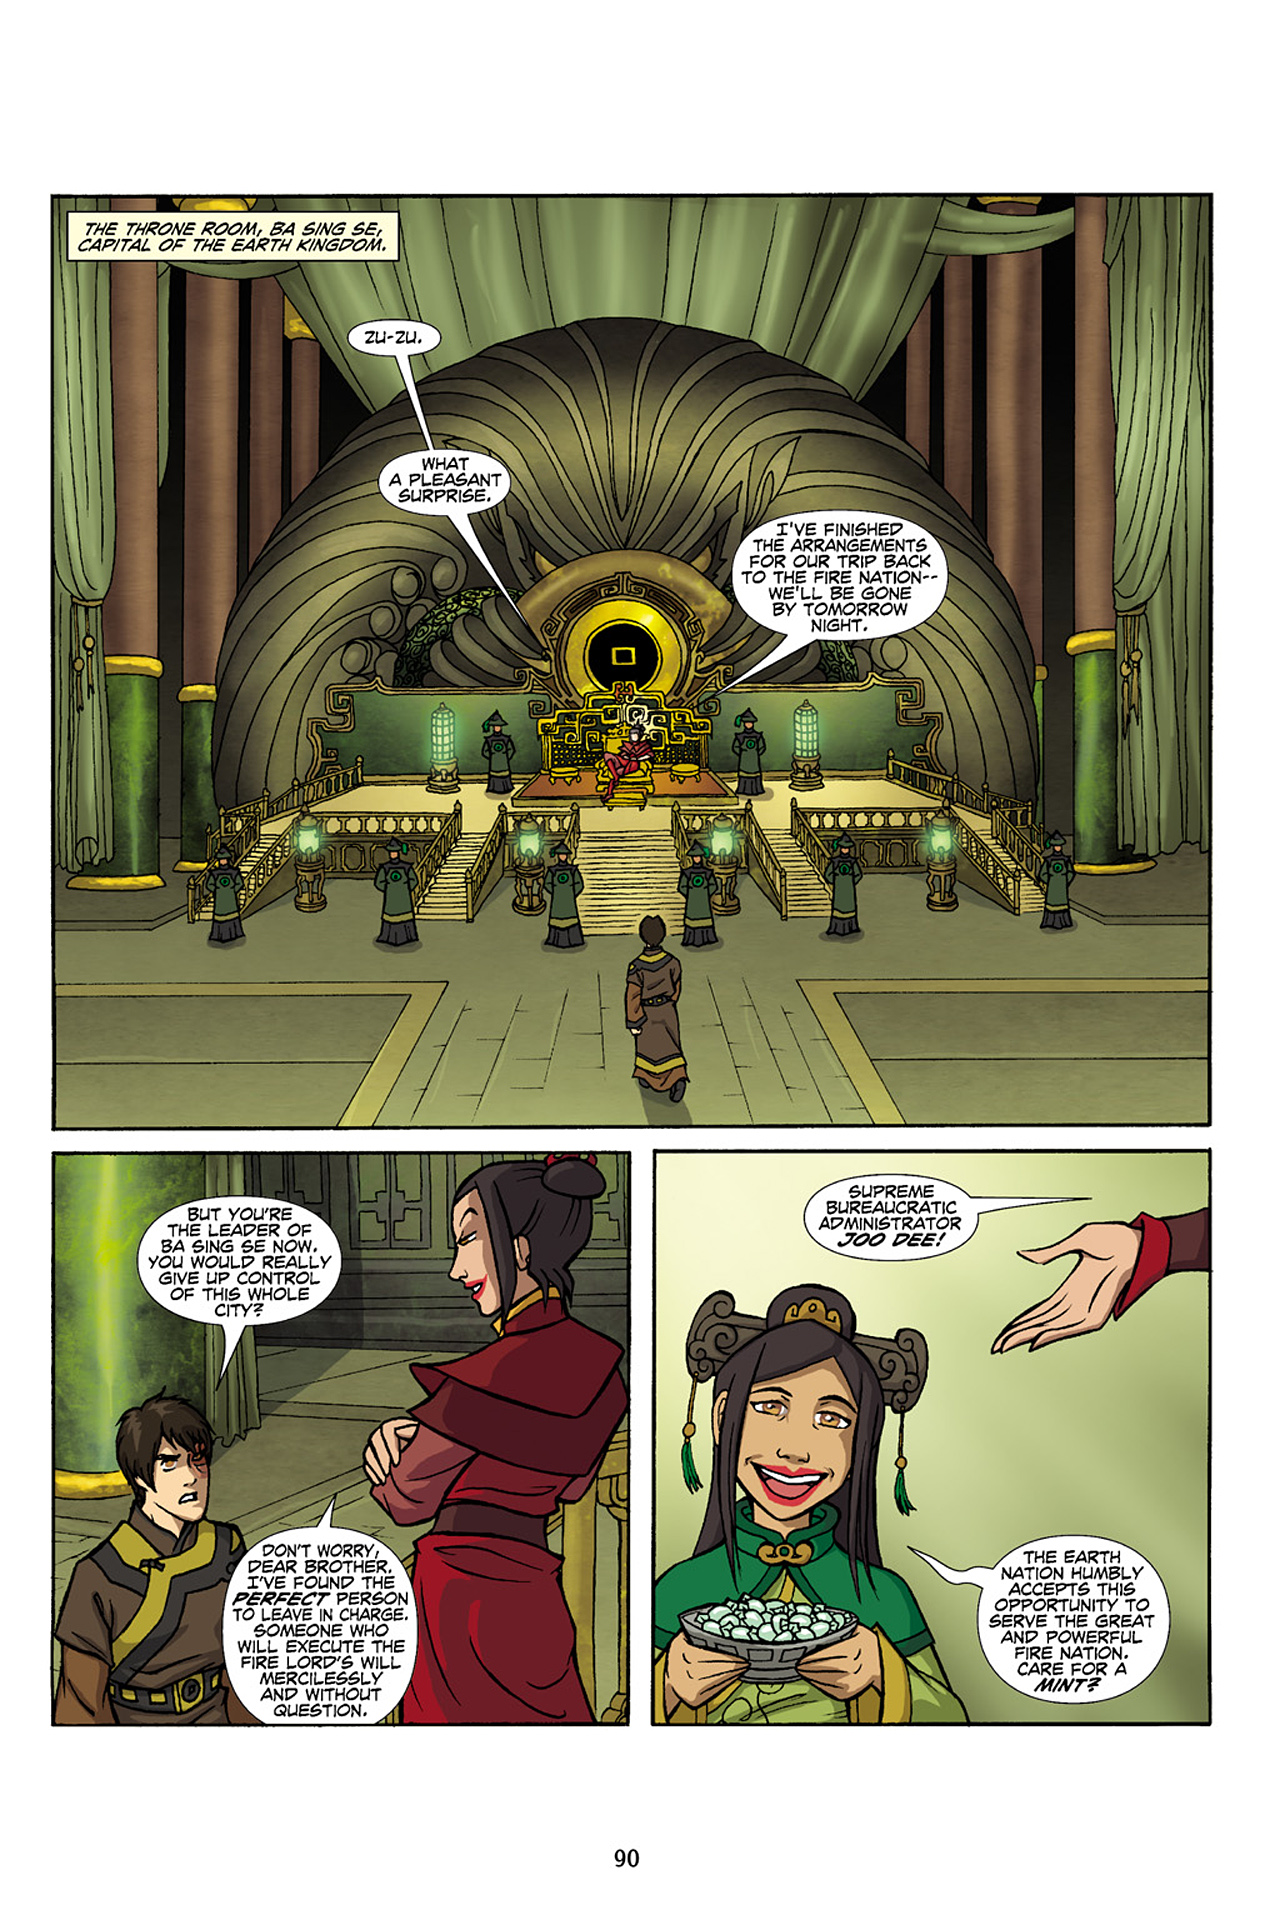 Nickelodeon Avatar: The Last Airbender - The Lost Adventures chap full pic 91